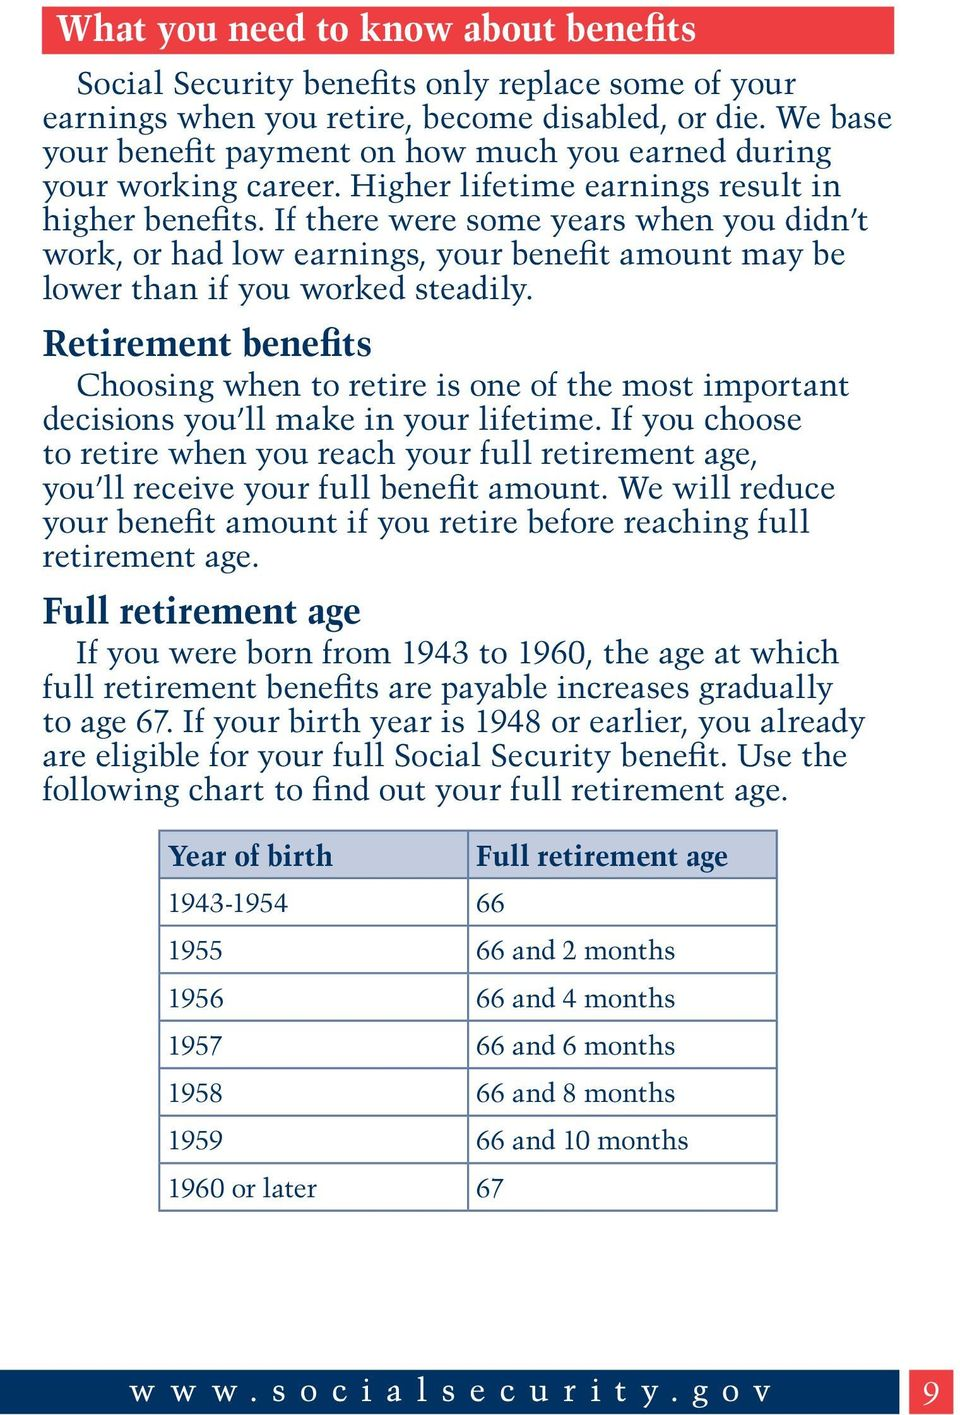 If there were some years when you didn t work, or had low earnings, your benefit amount may be lower than if you worked steadily.